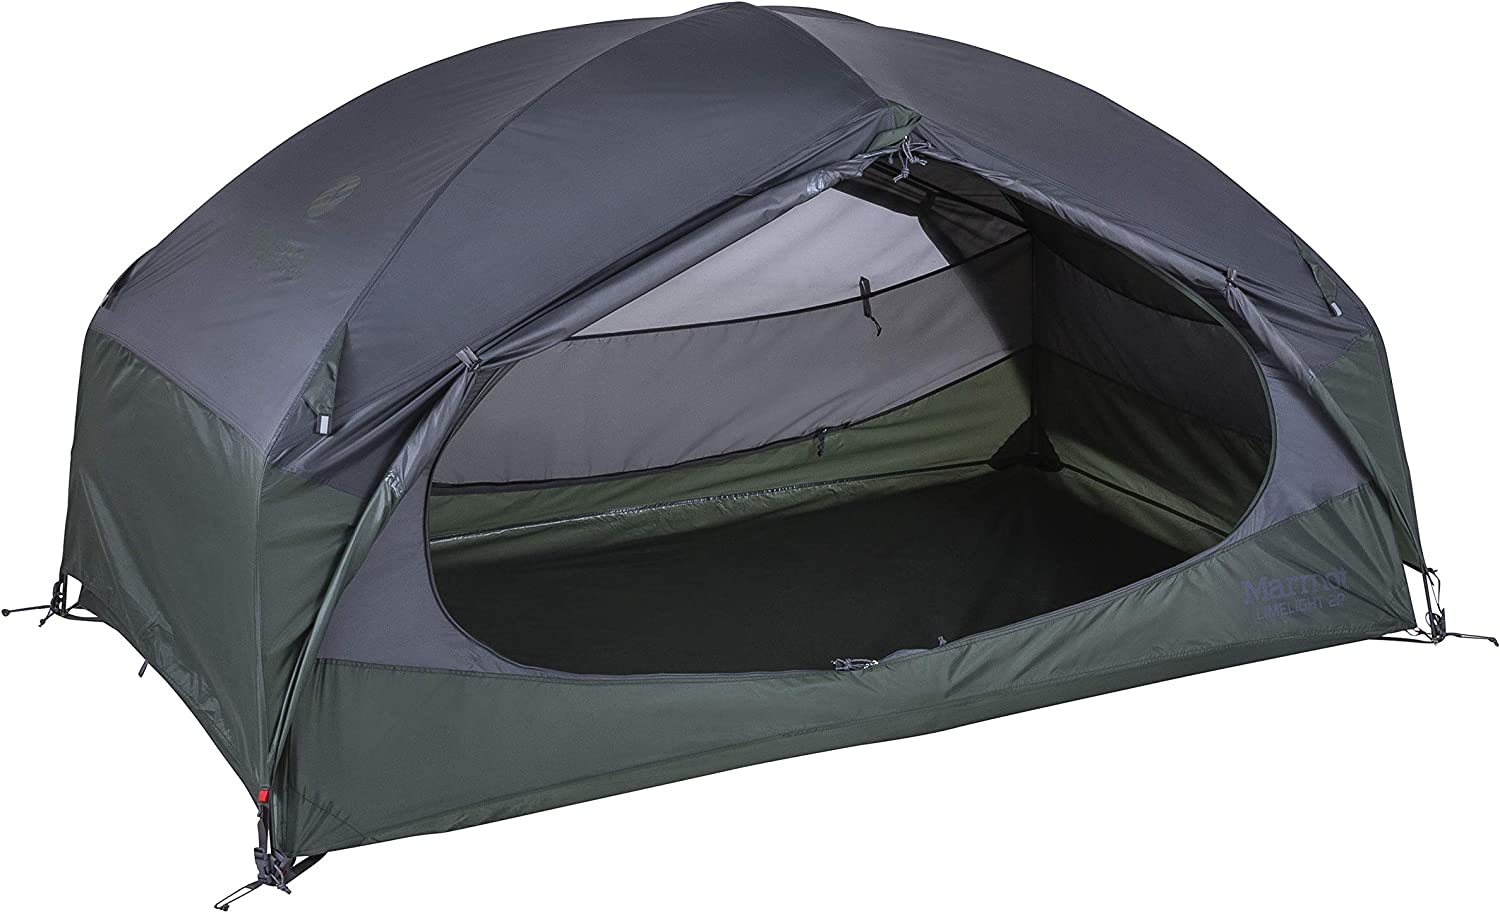 Marmot Limelight Camping Tent- Best Tent For High Winds